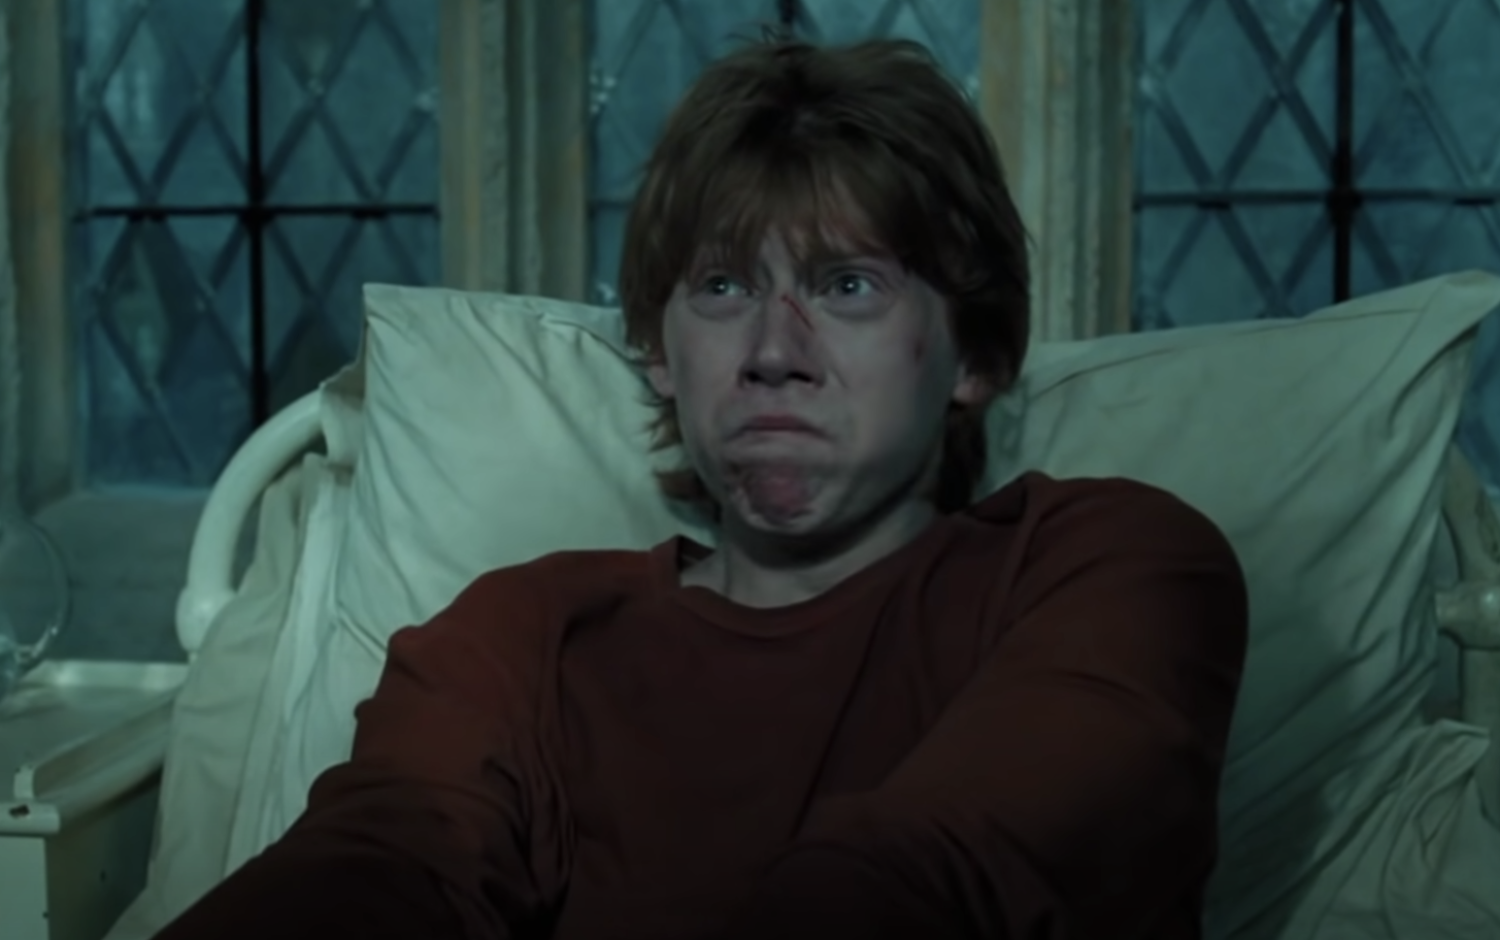 Ron in pain in a hospital bed